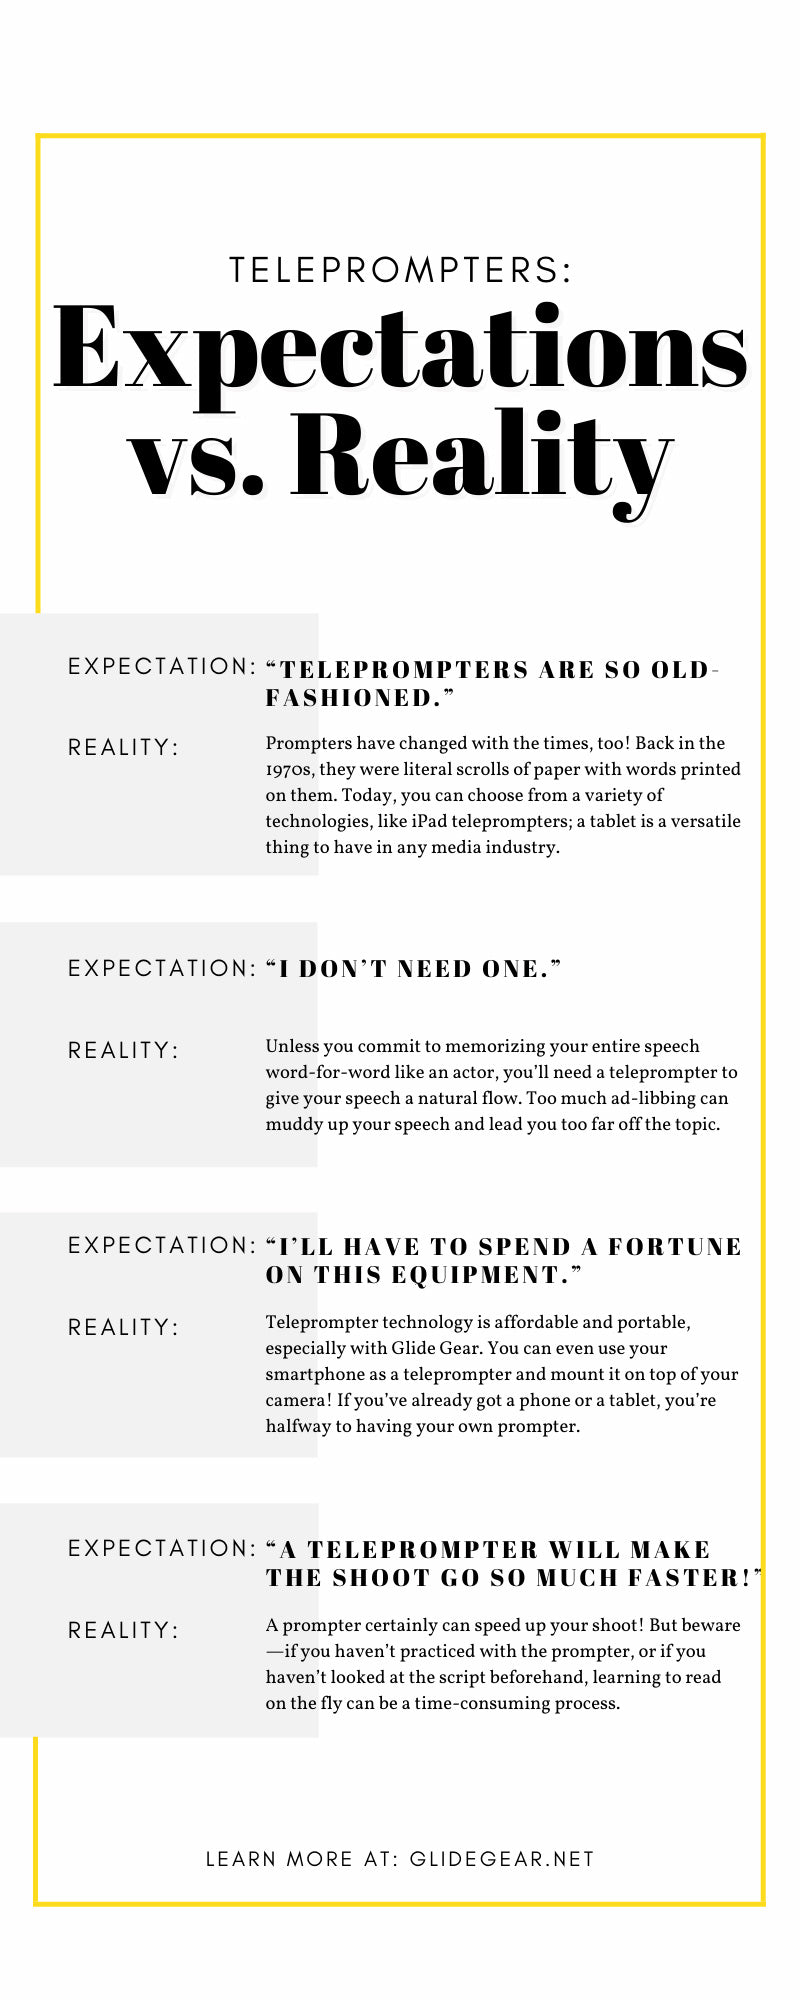 Teleprompters: Expectations vs. Reality